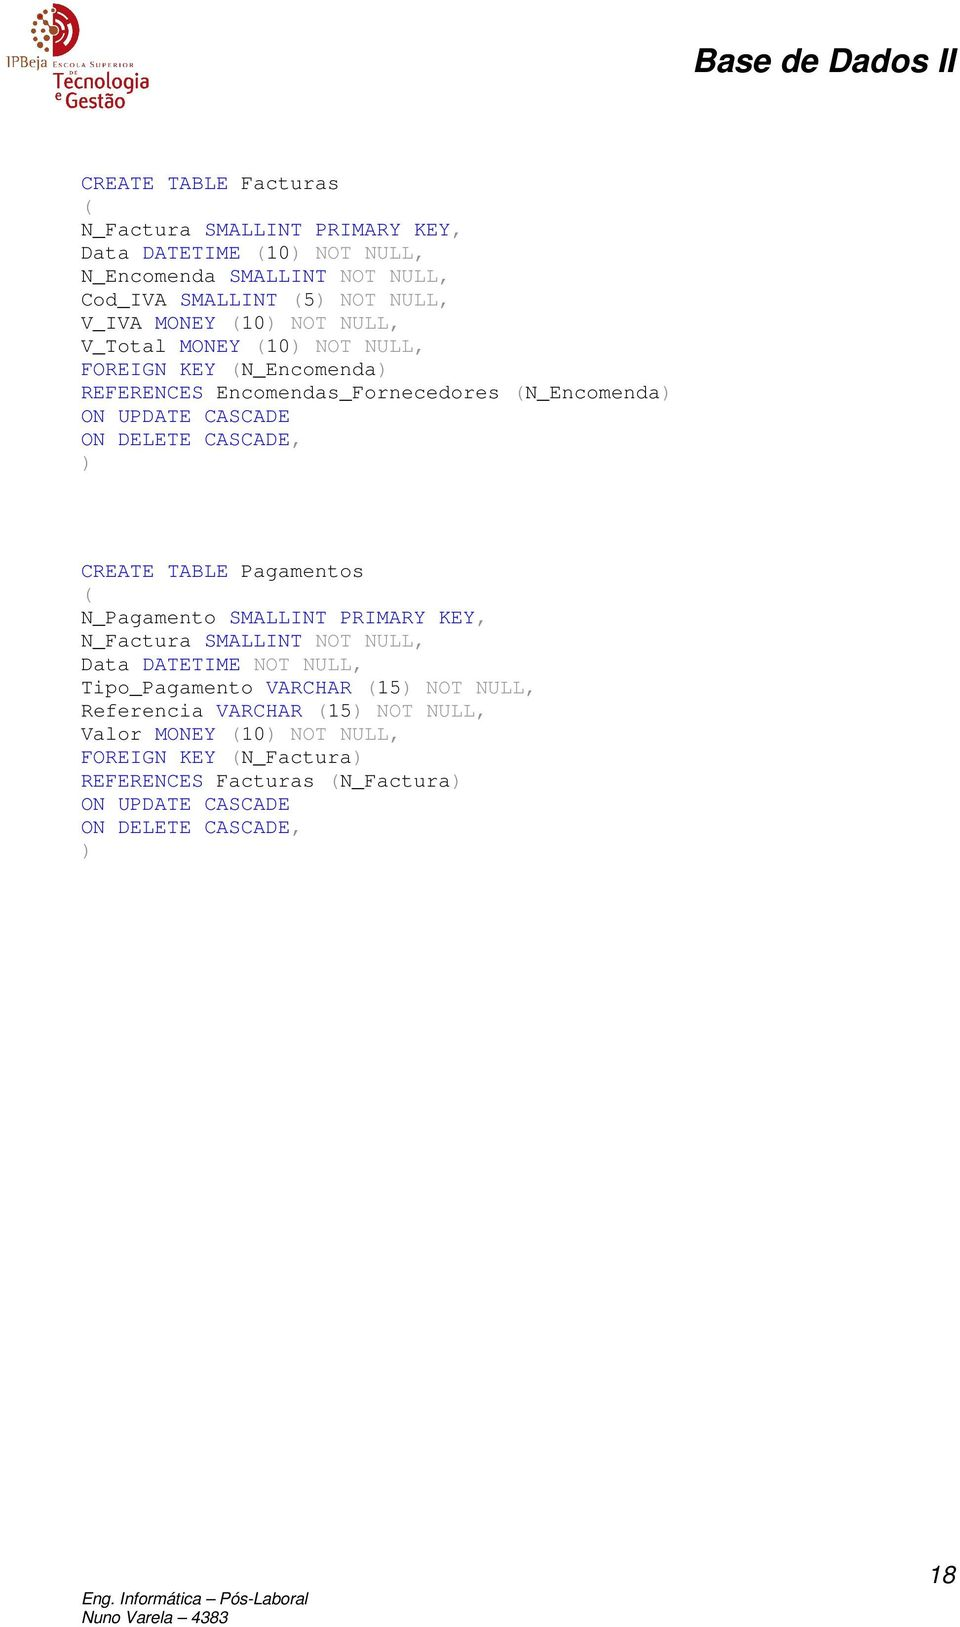 N_Encomenda CREATE TABLE Pagamentos N_Pagamento SMALLINT PRIMARY KEY, N_Factura SMALLINT NOT NULL, Data DATETIME NOT NULL,